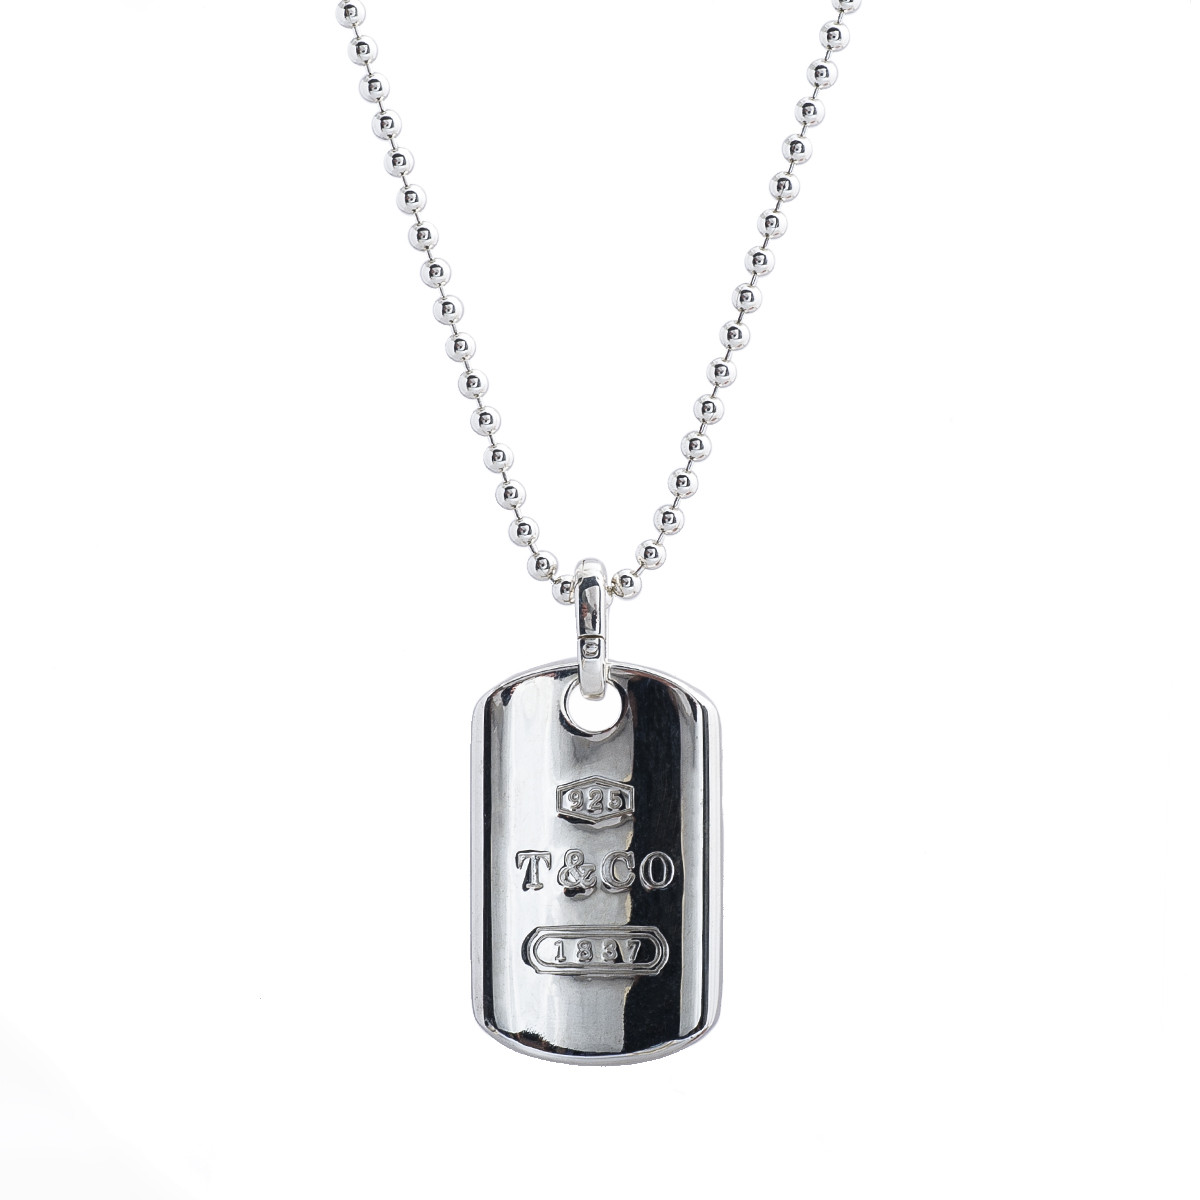 d7531c8aa Vintage Tiffany & Co. 1837 Dog Tag Necklace Gallery Image